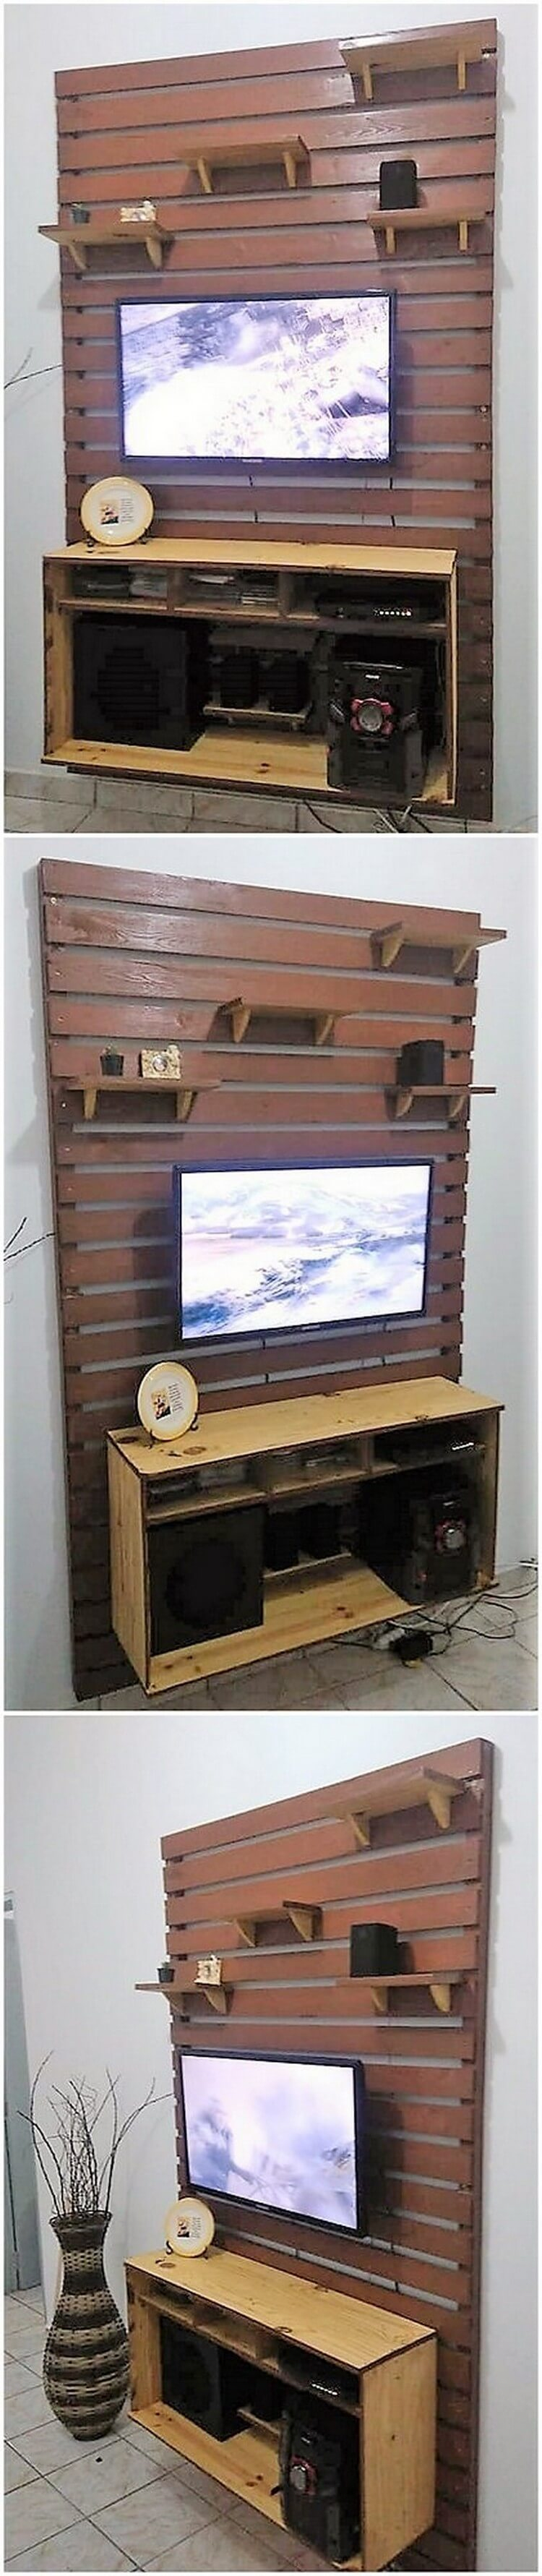 Pallet Wall LED Holder and Media Unit